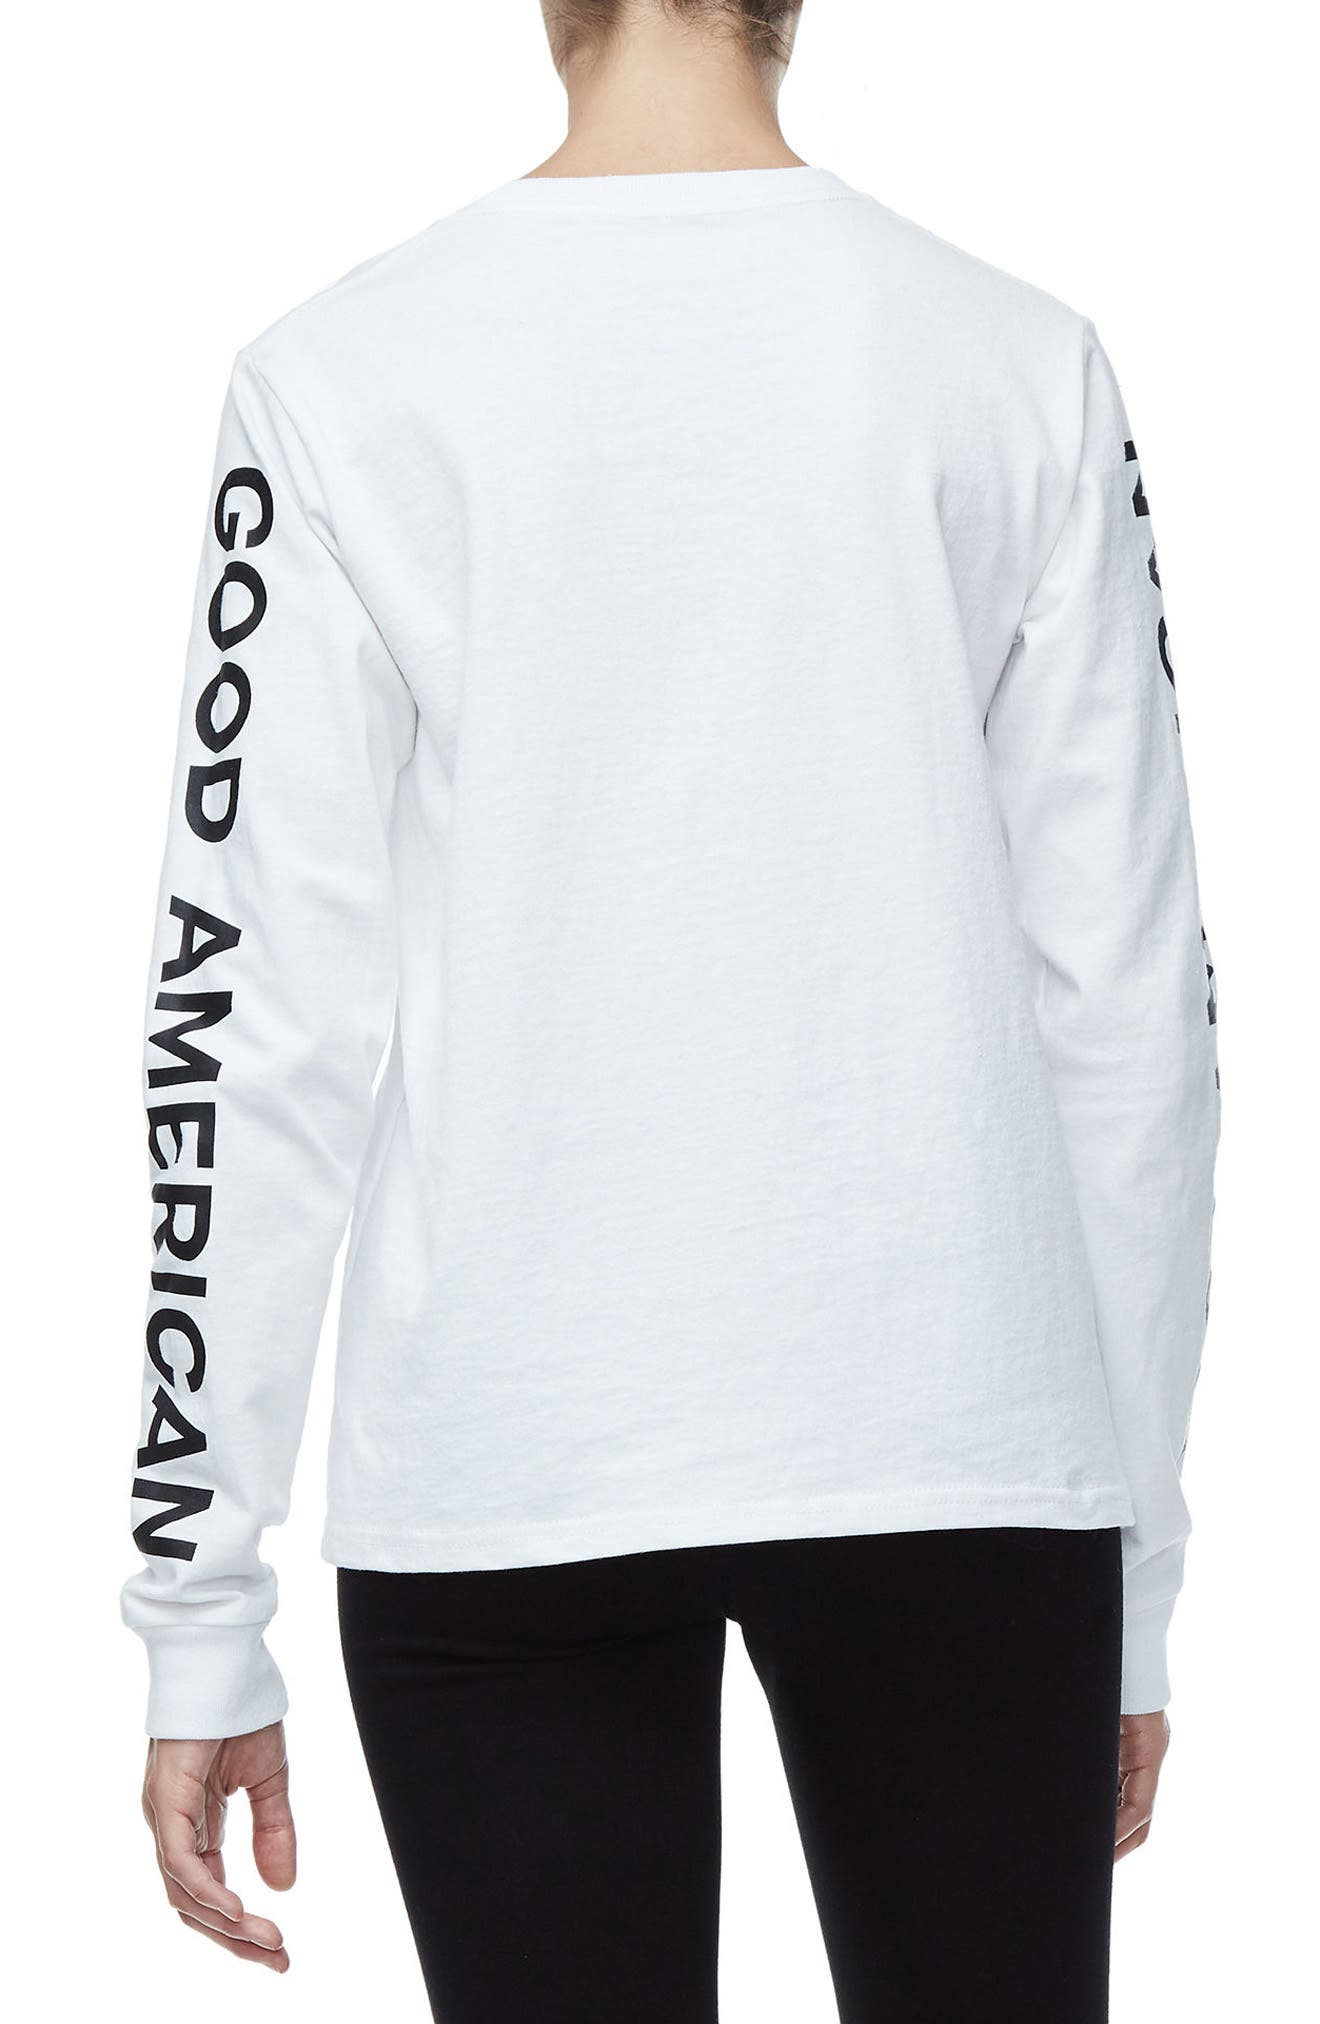 Goodies Long Sleeve Graphic Tee,                             Alternate thumbnail 3, color,                             White001